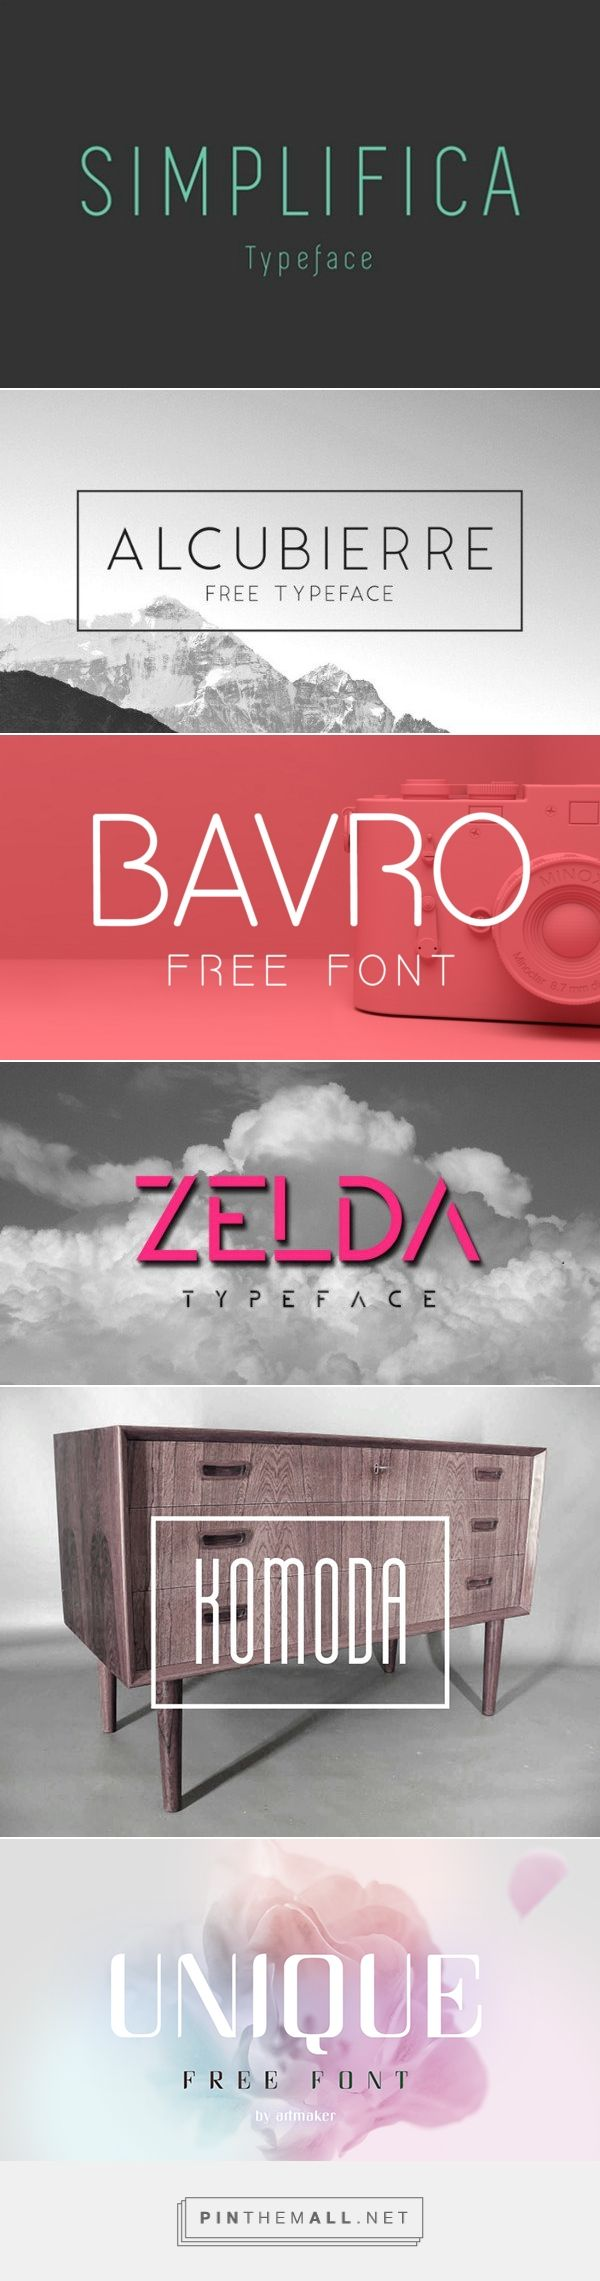 60 Free Sans Serif Fonts to Give Your Designs a Modern Touch #freefonts #fonts